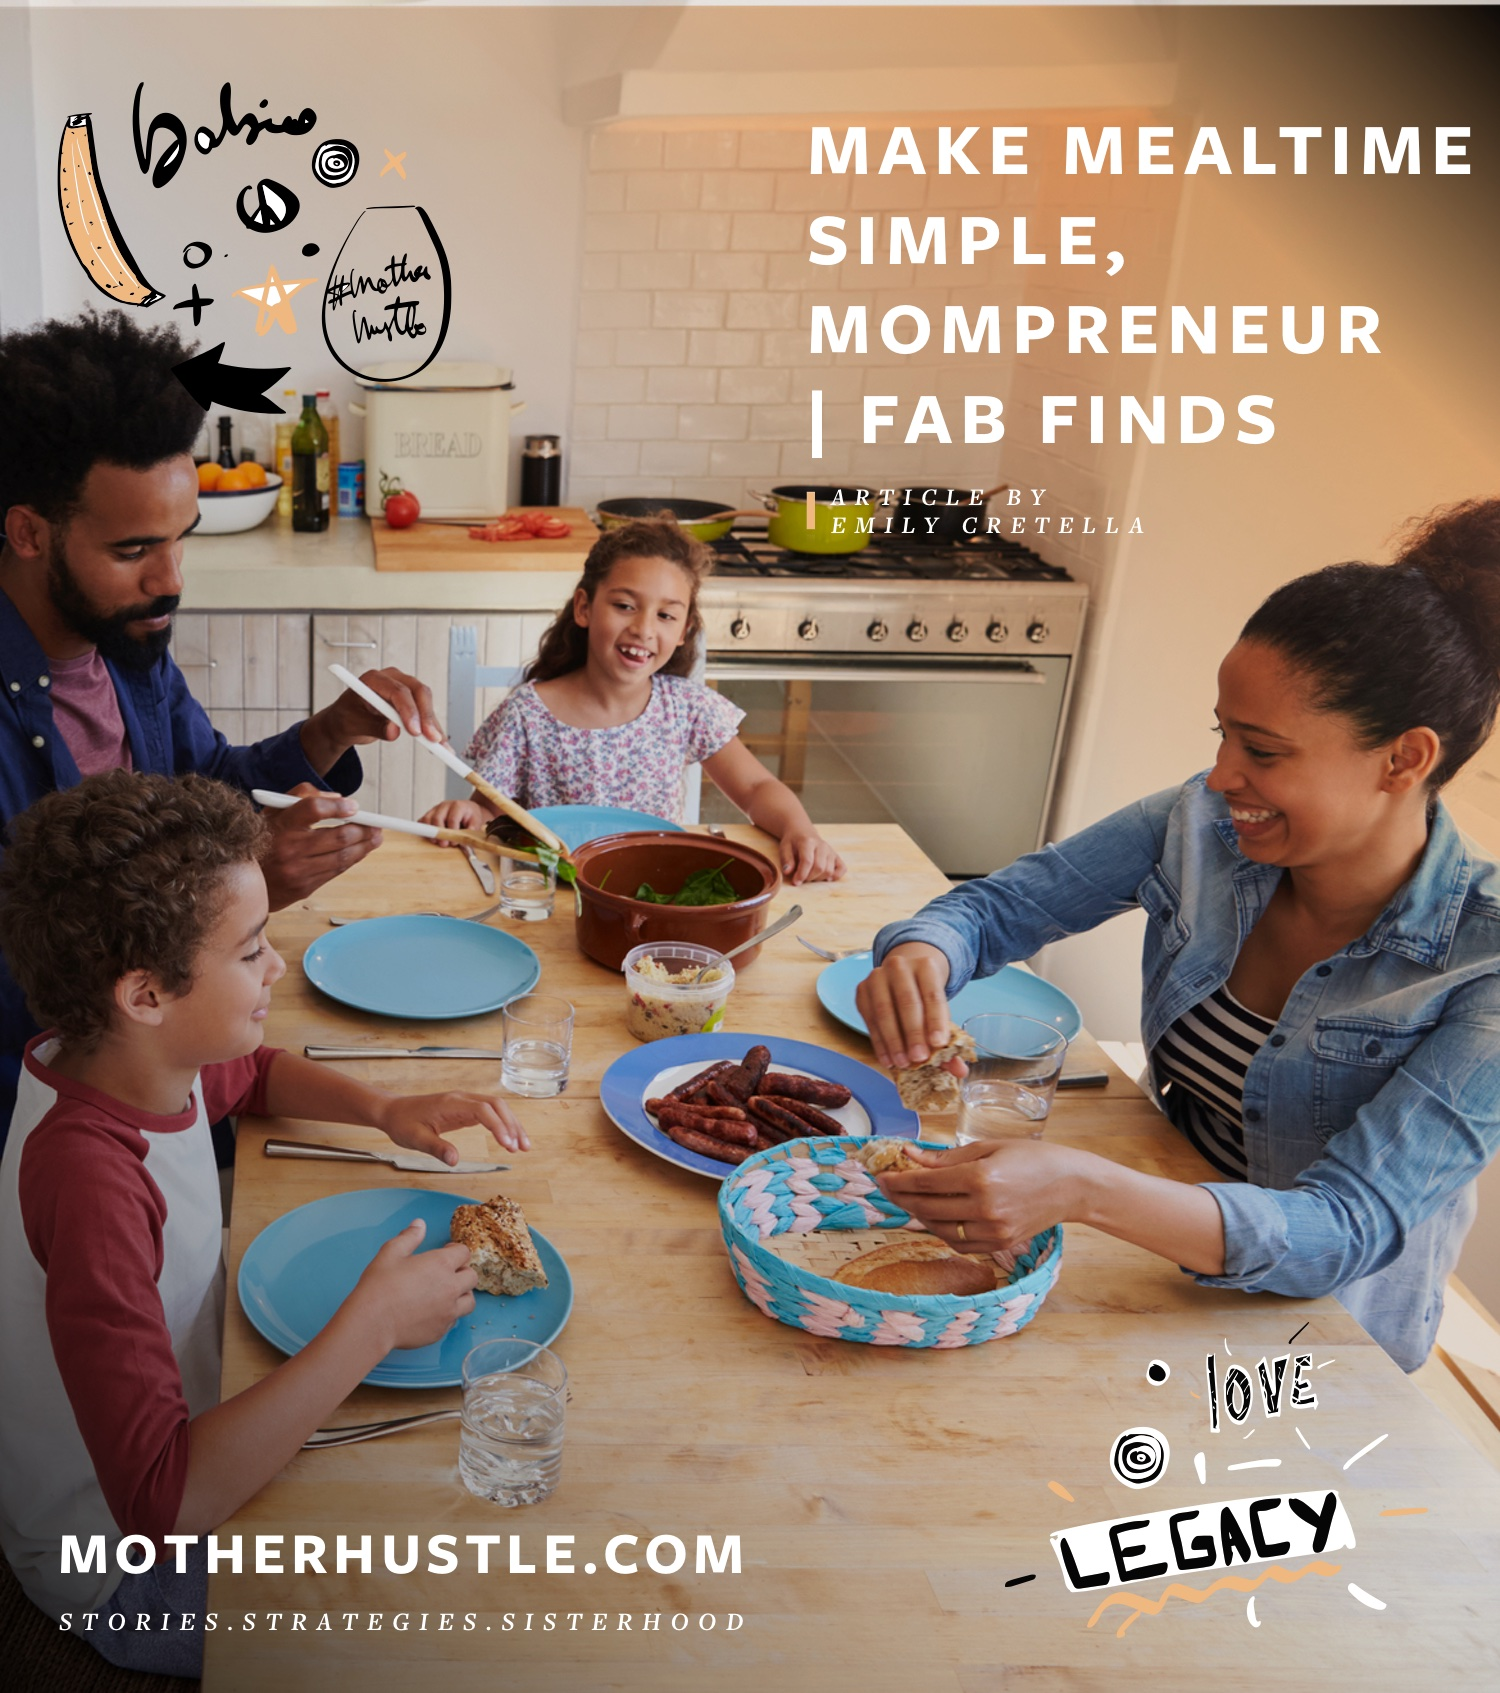 Make Mealtime Simple, Mompreneur | Fab Finds